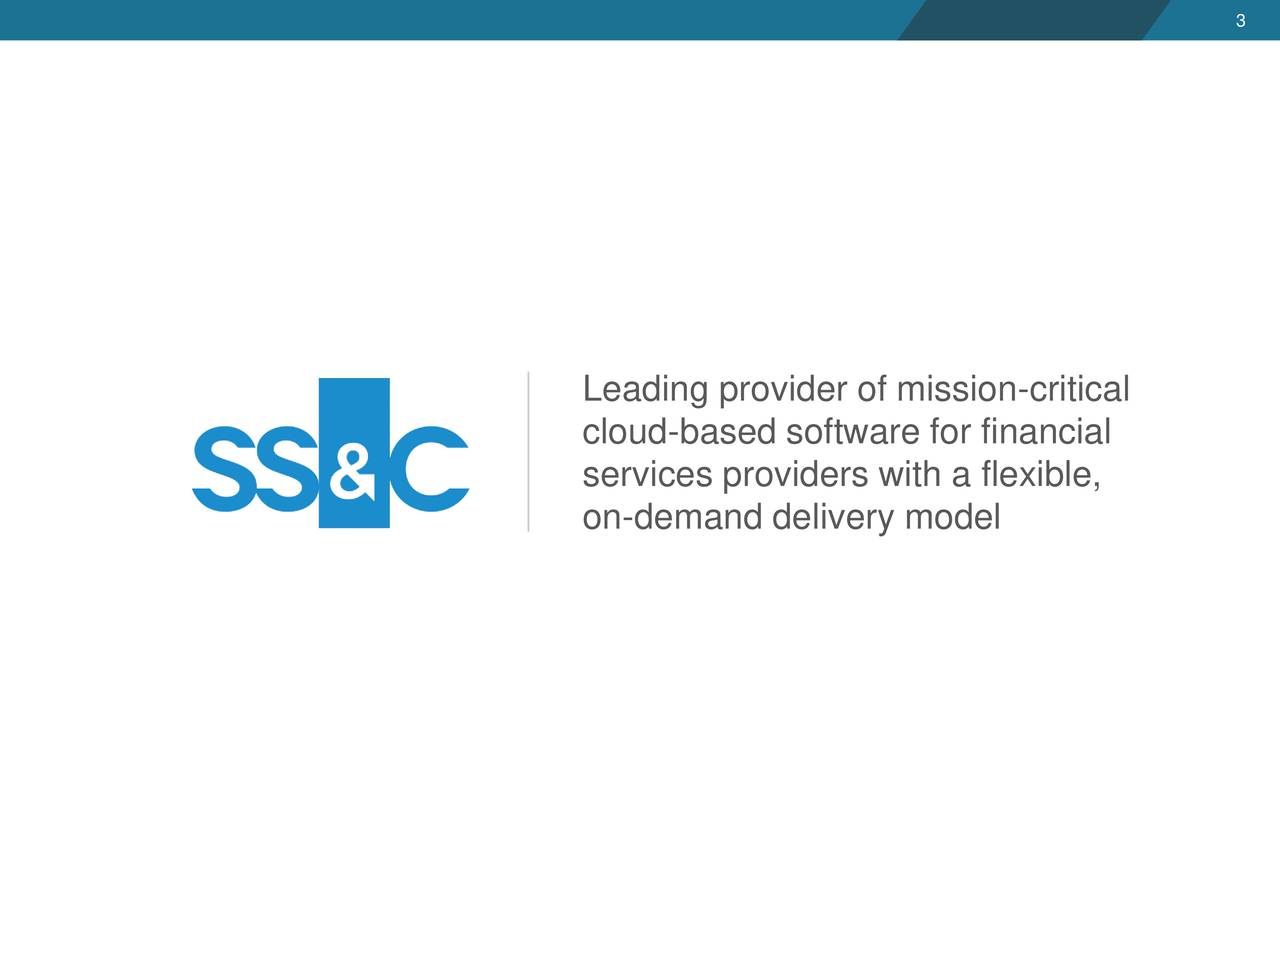 Leading provider of mission-critical cloud-based software for financial services providers with a flexible, on-demand delivery model